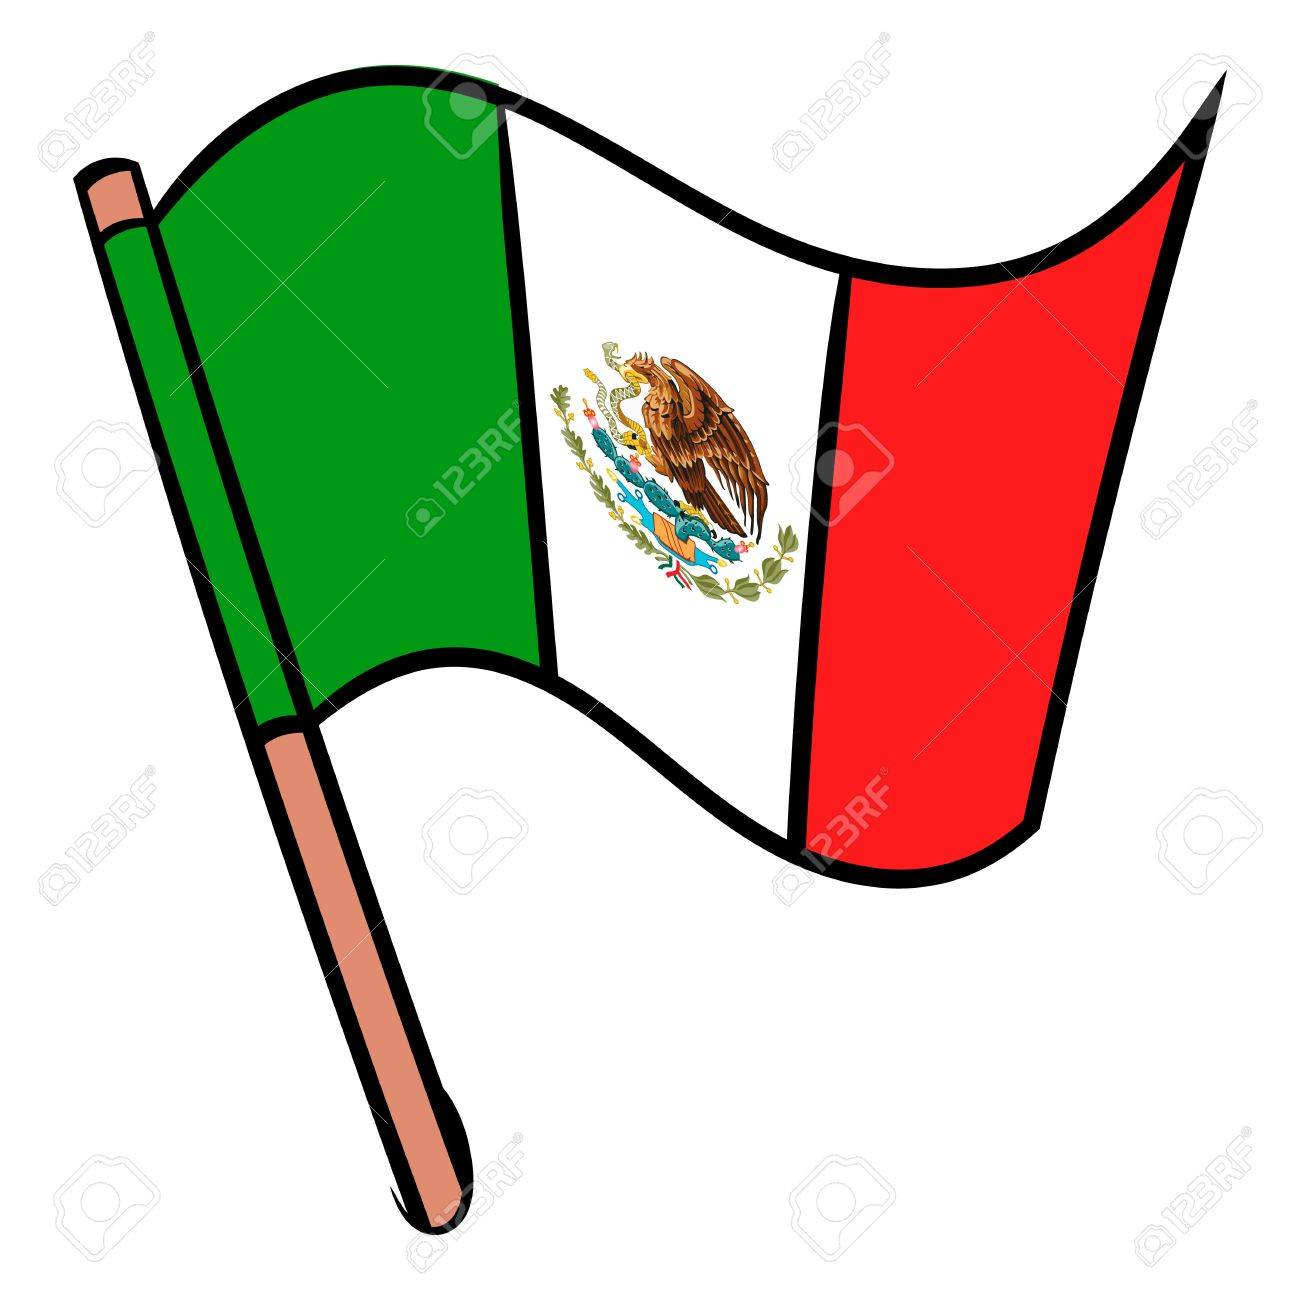 Flag Of Mexico Icon Cartoon Royalty Free Cliparts Vectors And